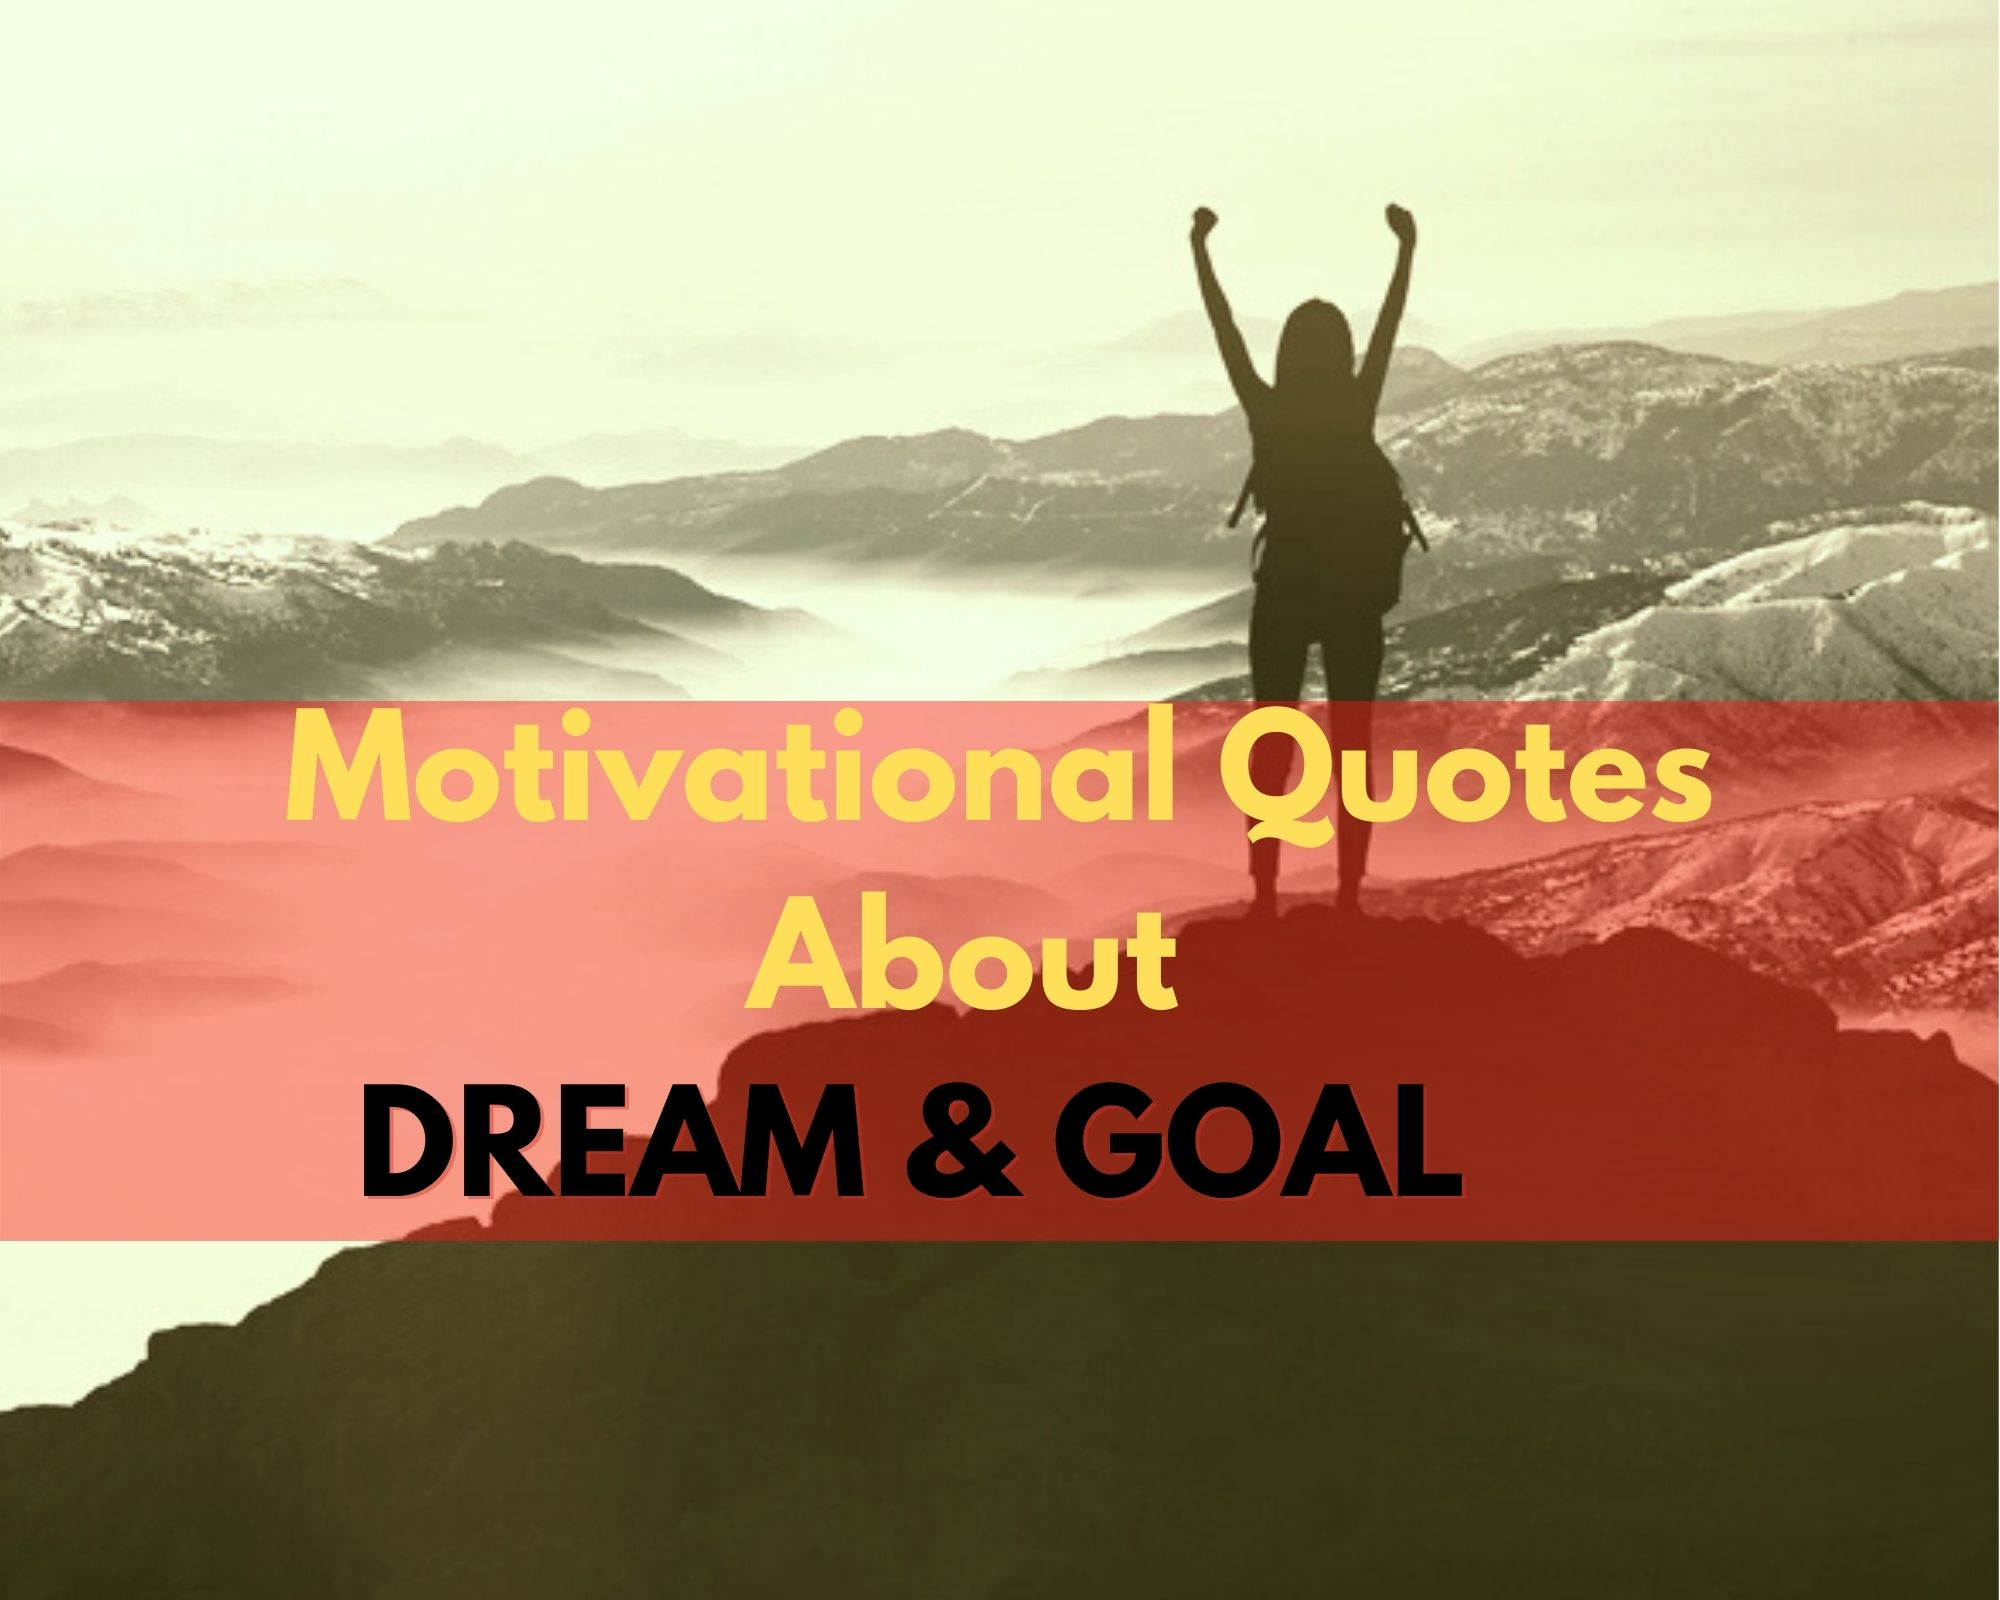 Motivational Quotes About Dream & Goal